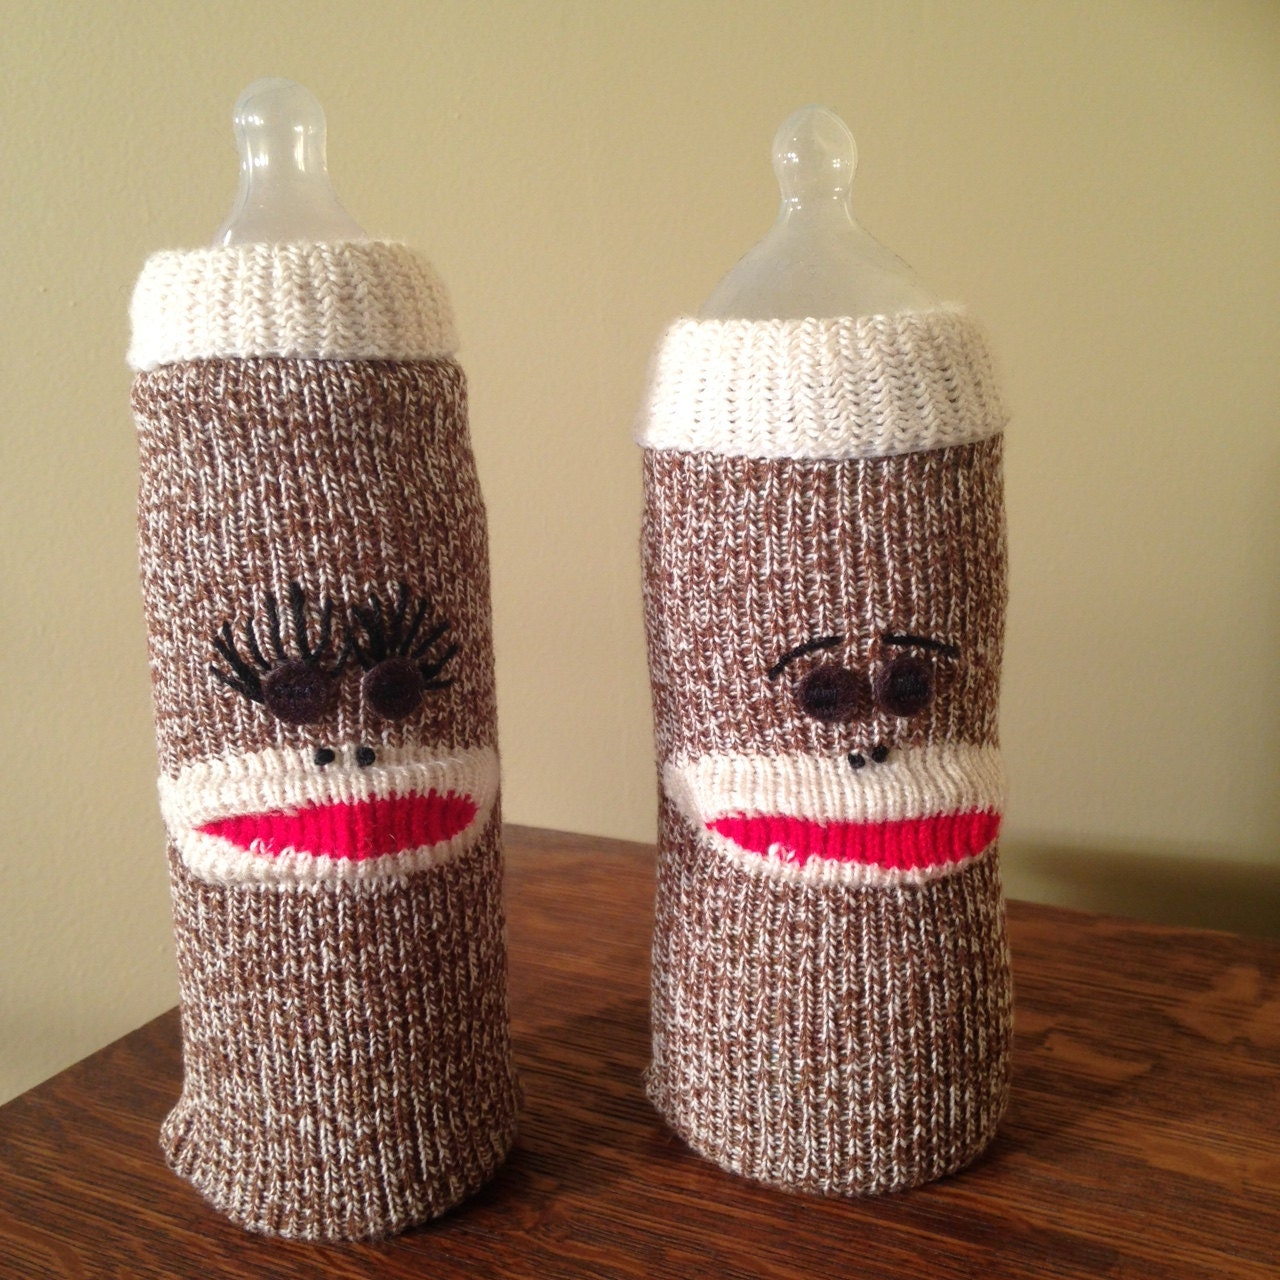 Sack Monkee Baby Bottle Cover Sock Monkey Nursery Bottle